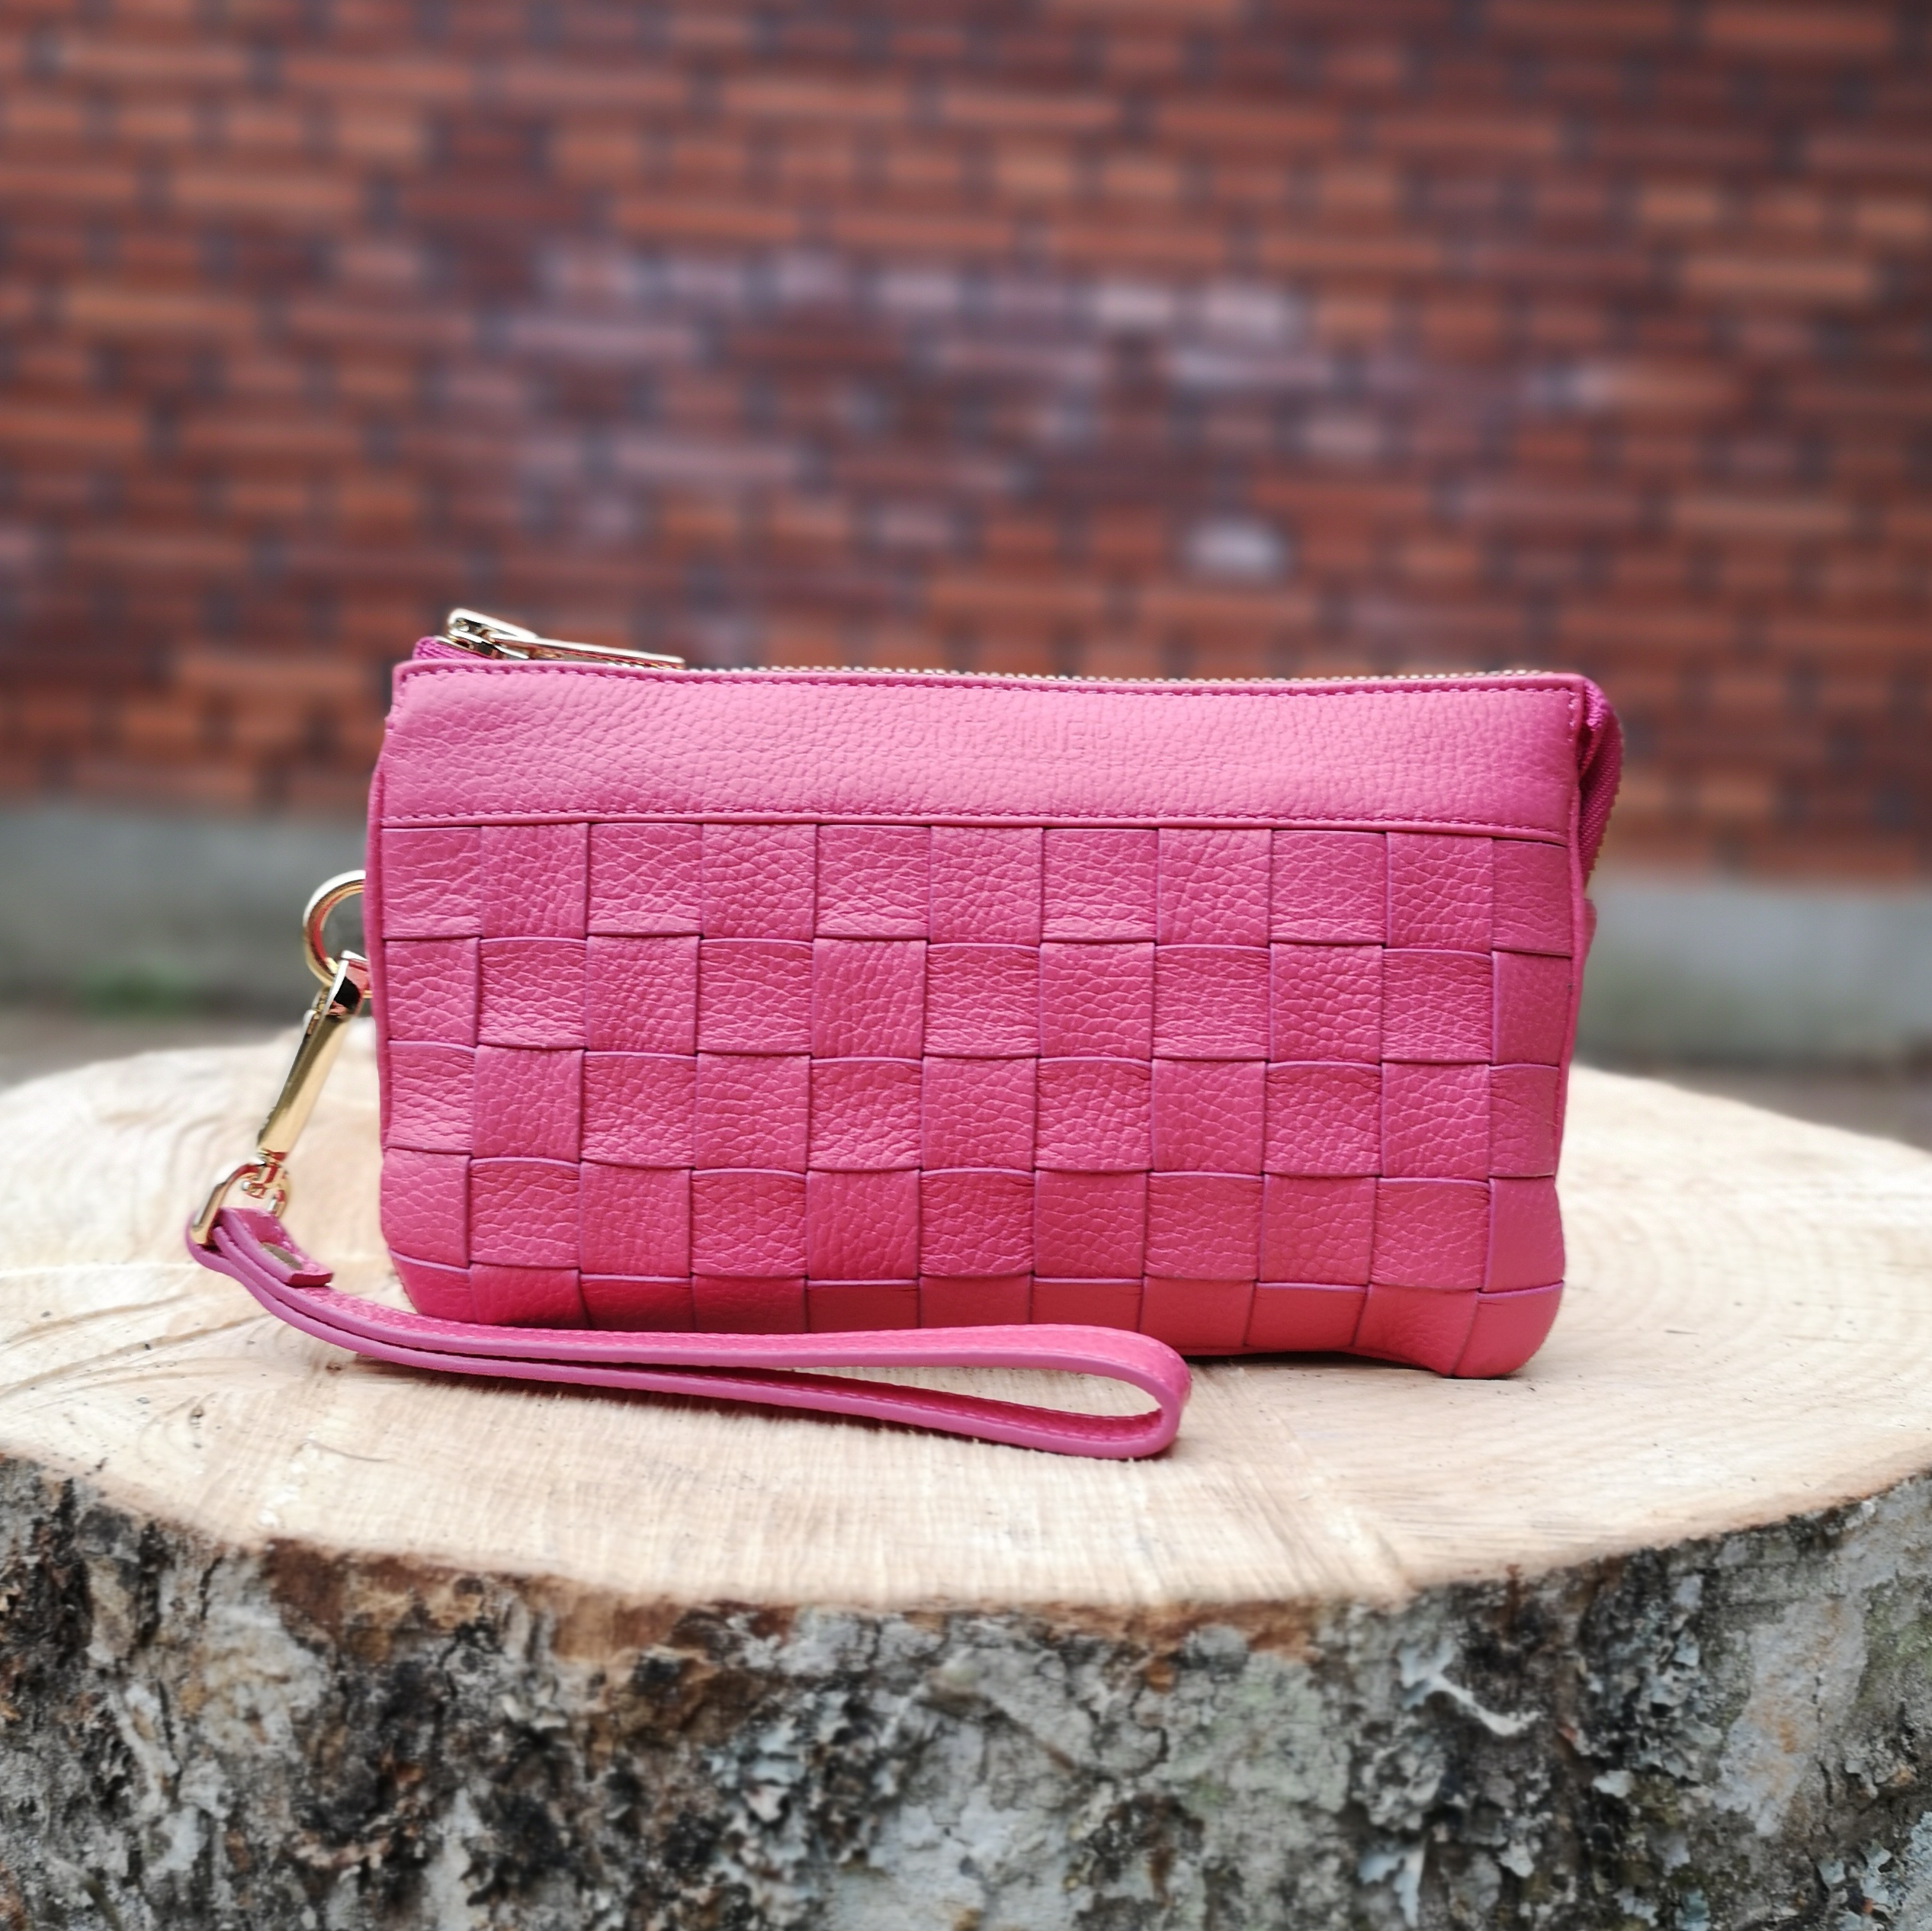 Kontainer Copenhagen Pink Passion Small Crossbody